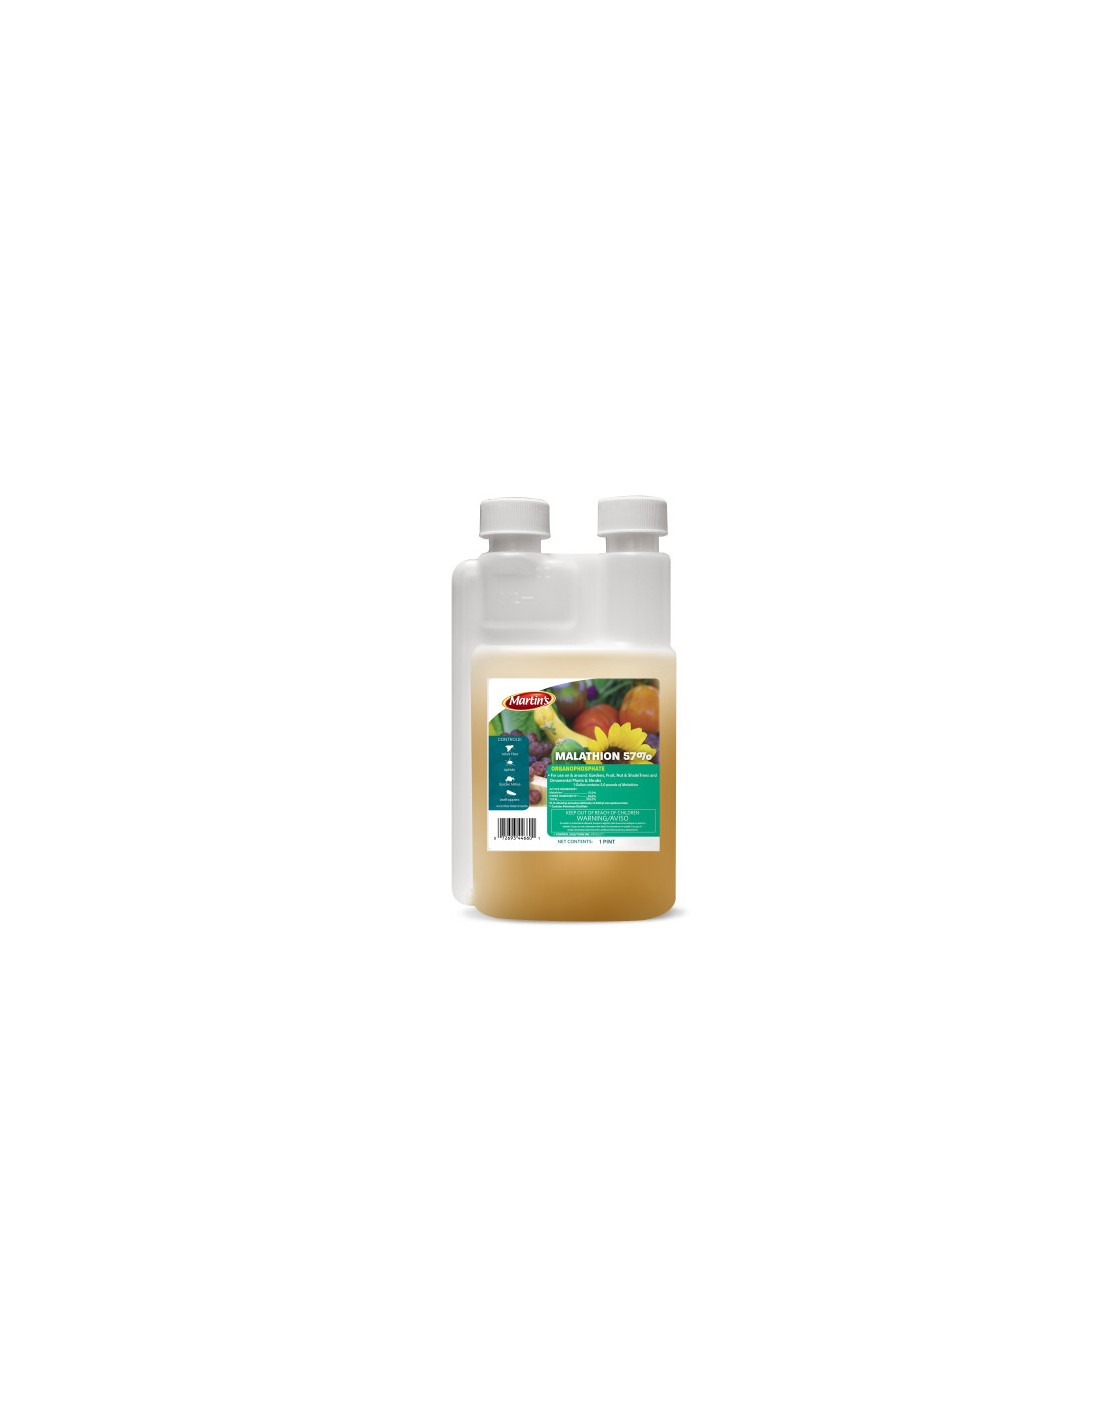 Martin's Malathion 57% - 16 oz bottle